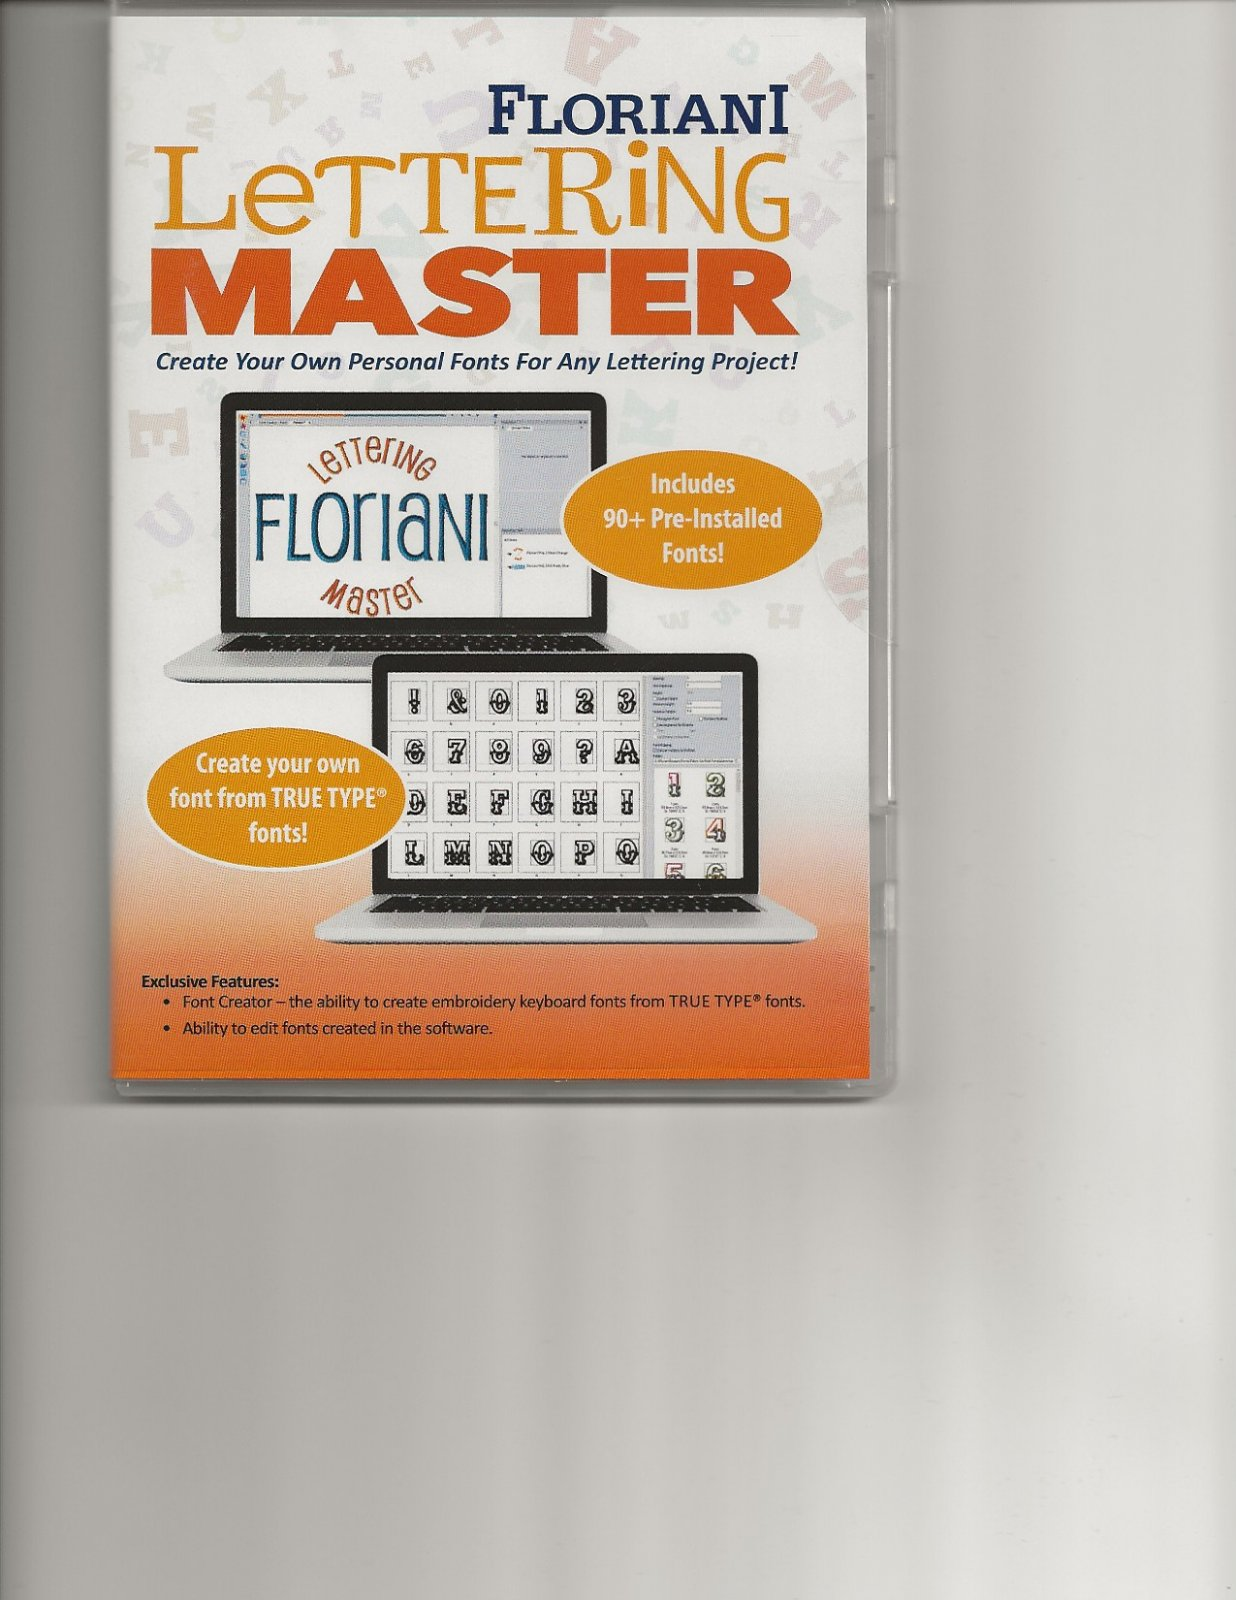 Floriani Lettering Master Software